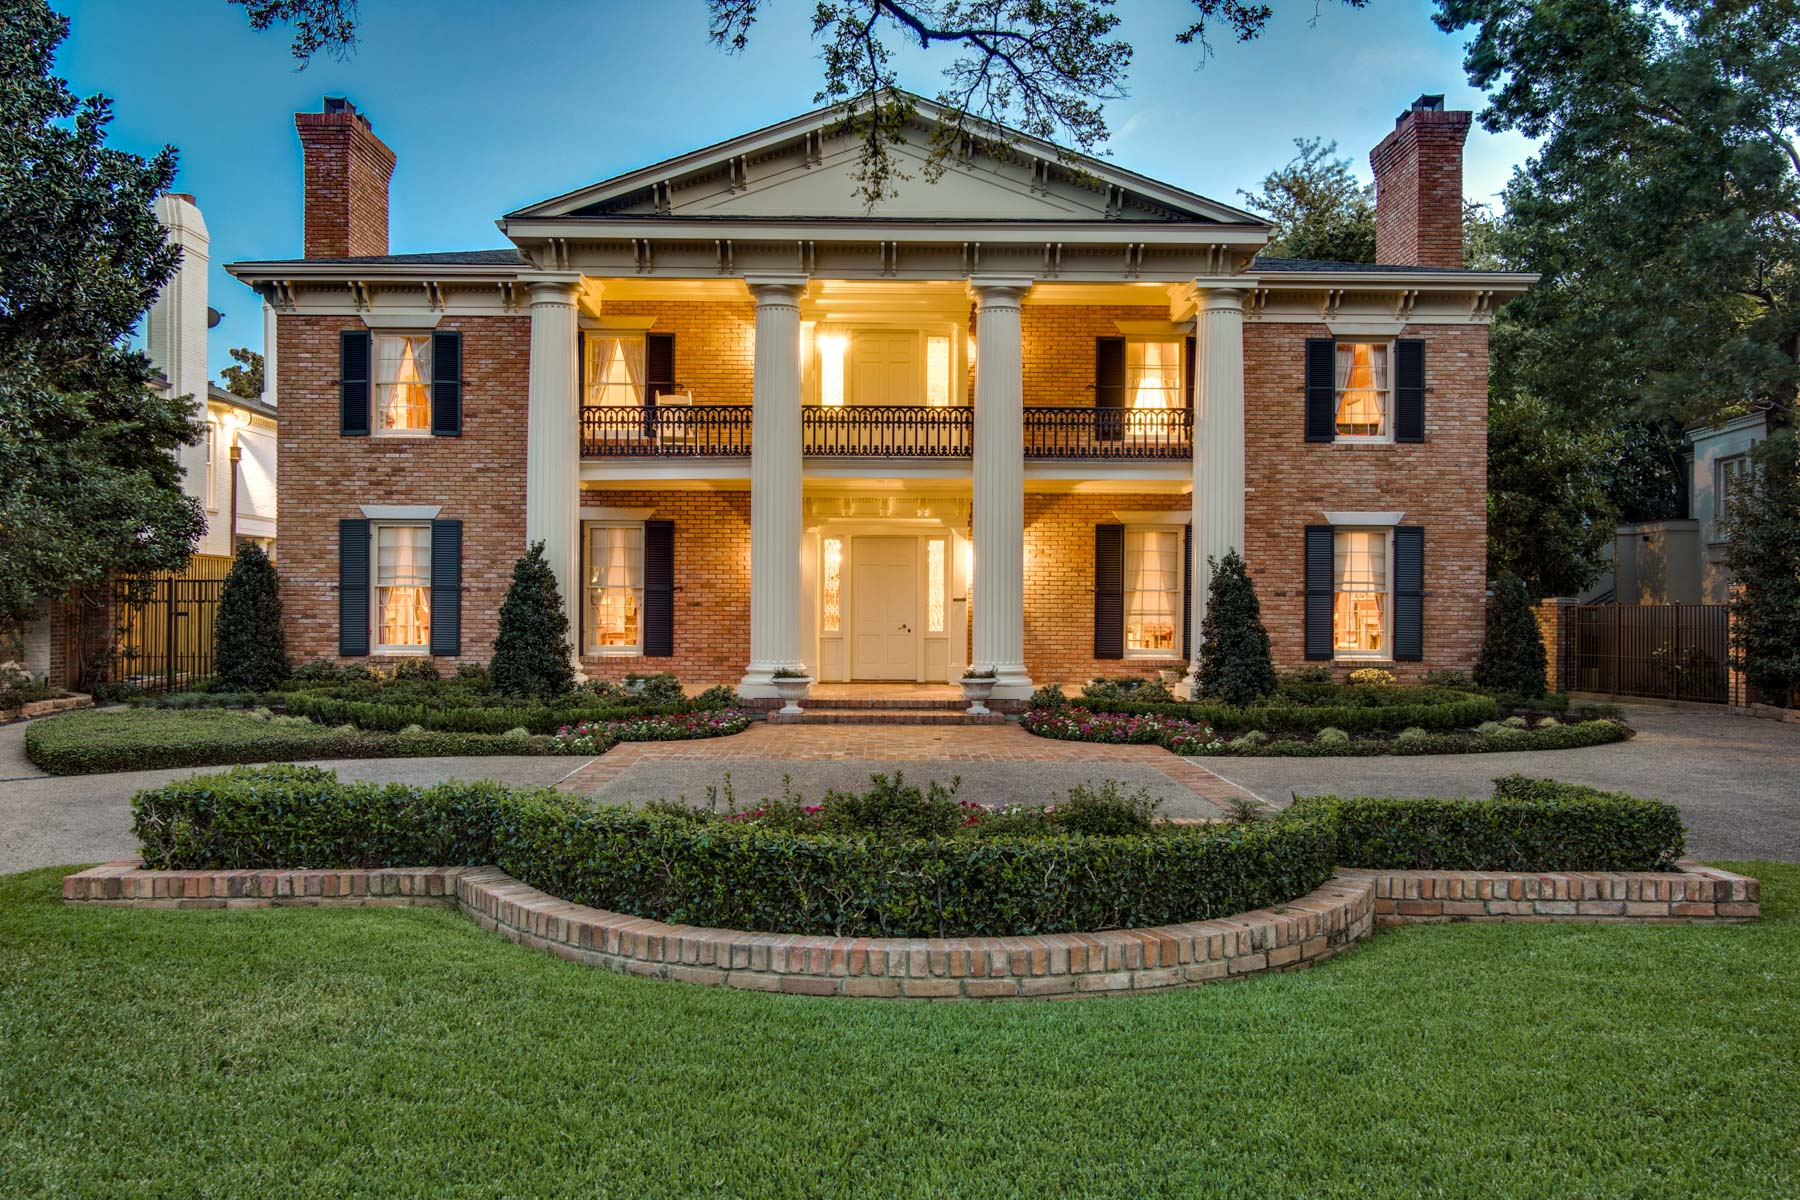 Single Family Home for Sale at Old Highland Park, Greek Revival Masterpiece 4005 Gillon Ave Dallas, Texas, 75205 United States